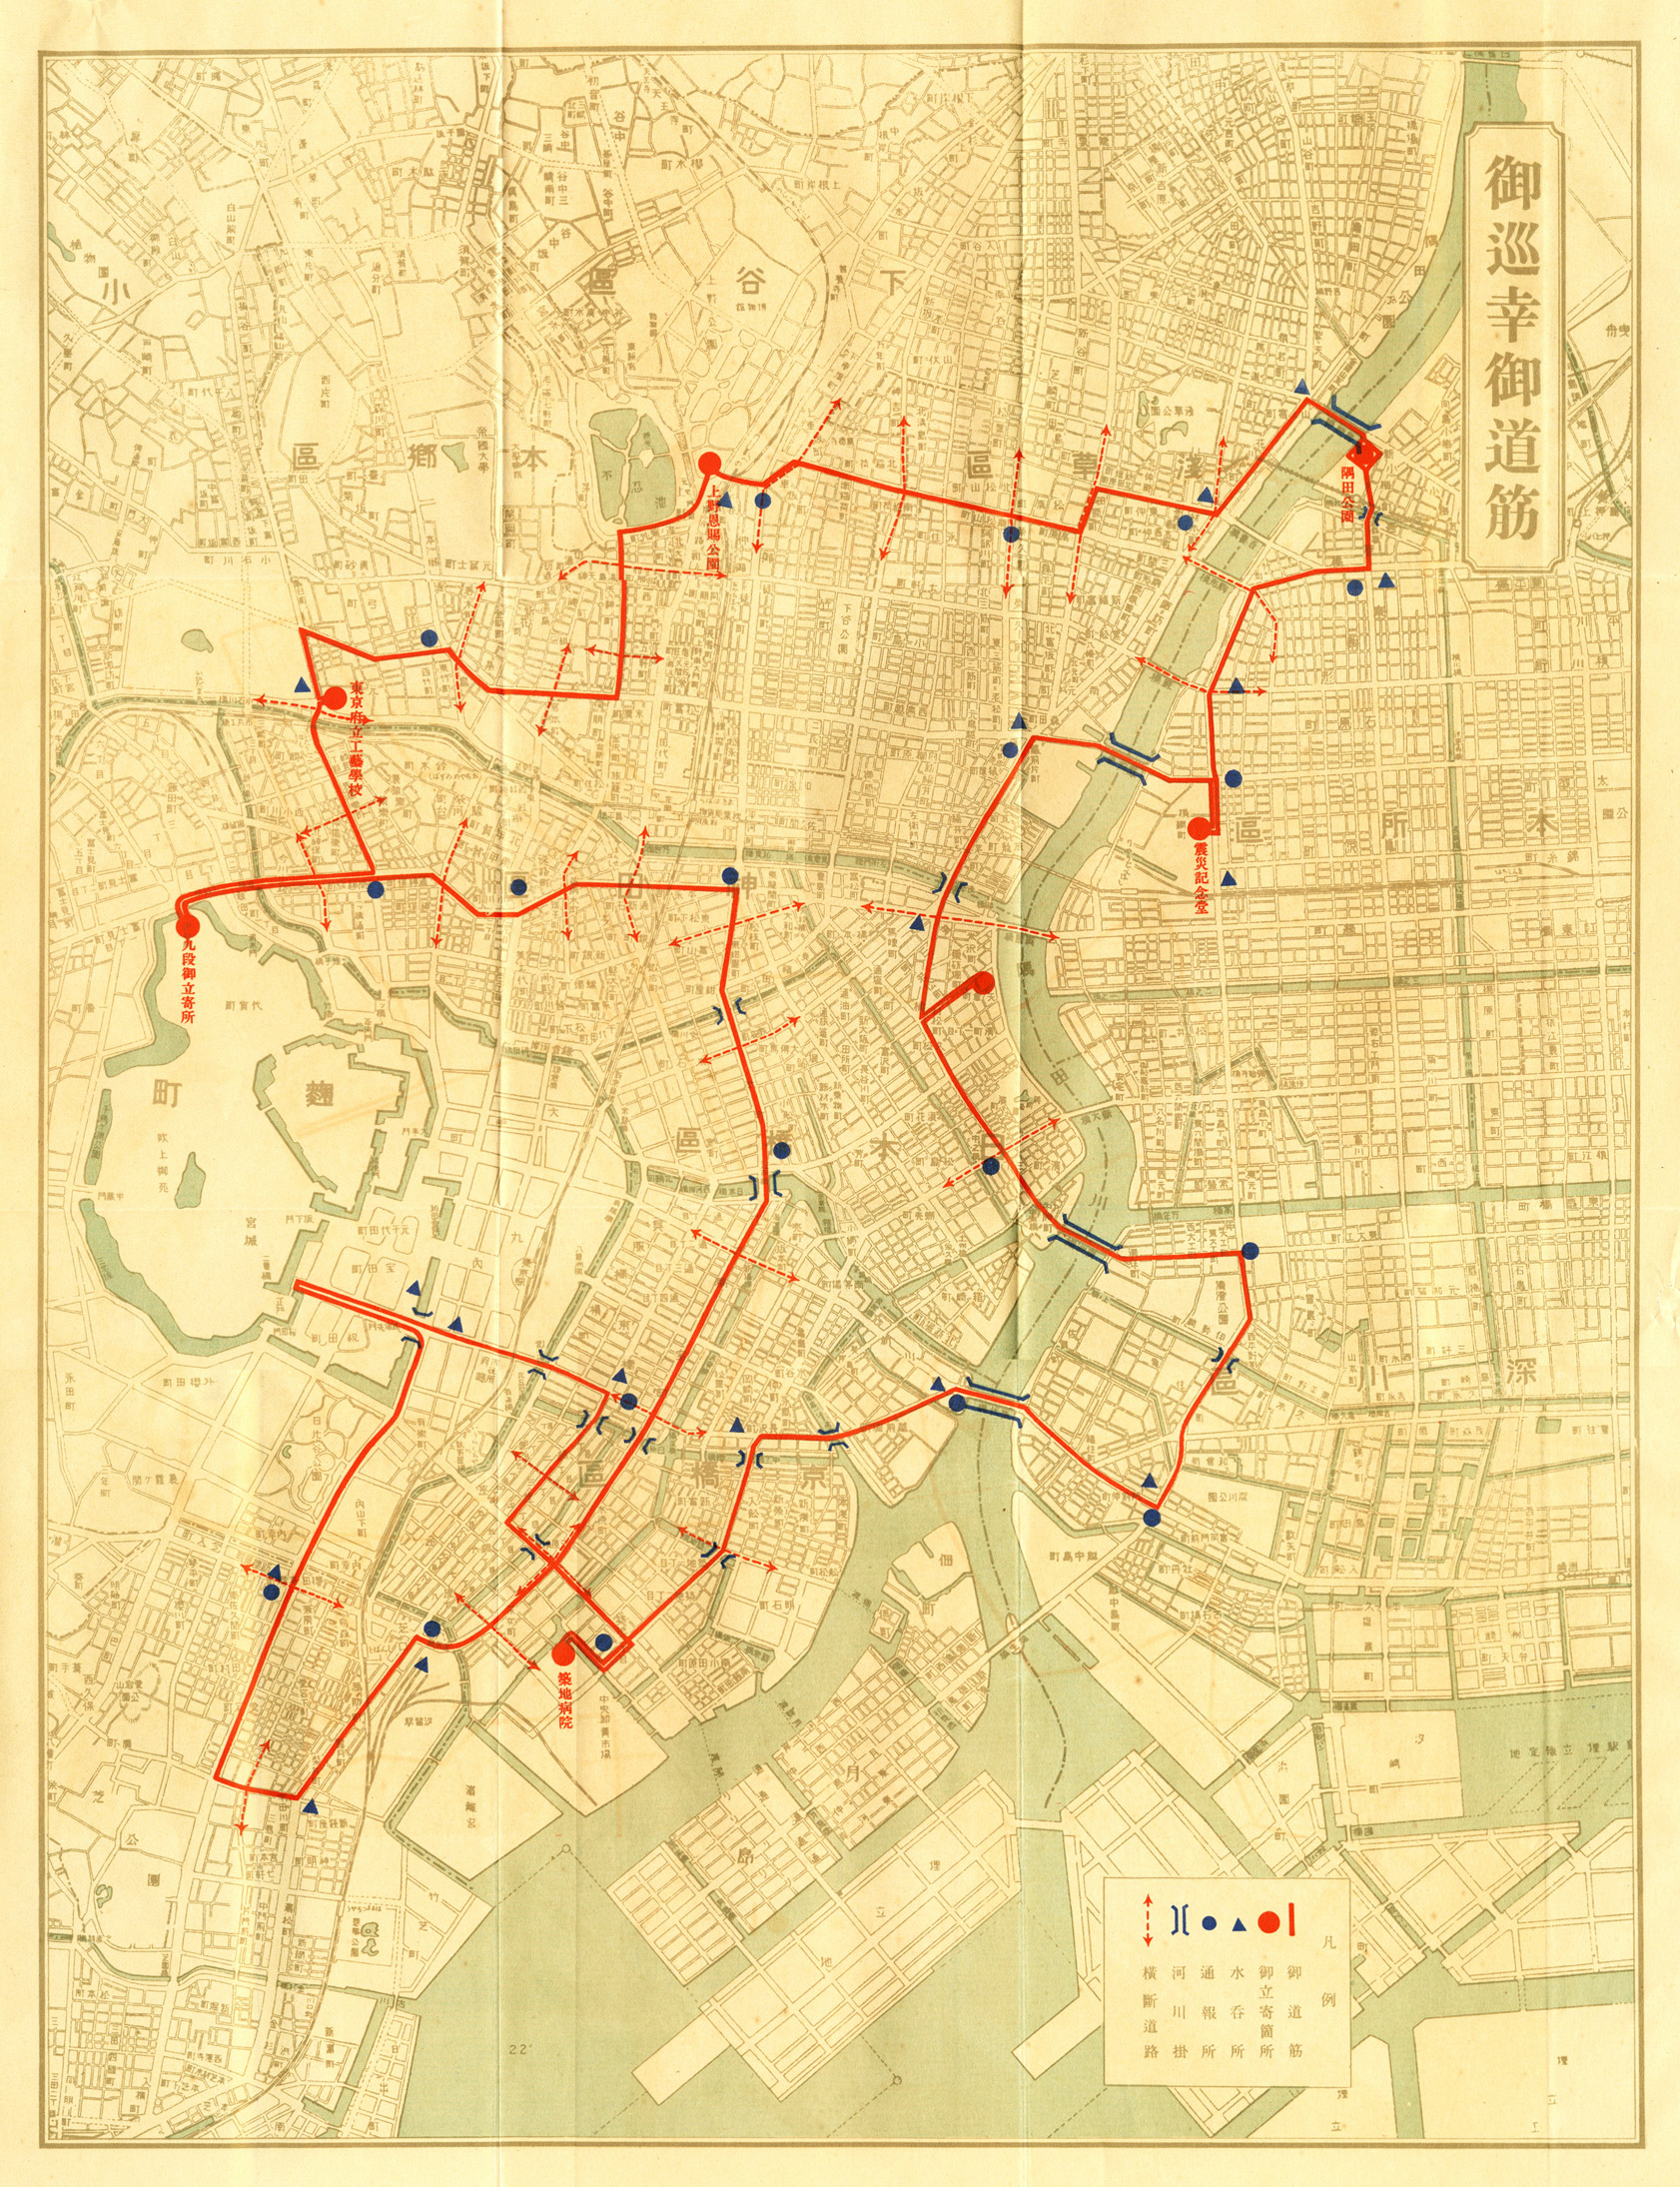 Map indicating the route of the Emperor's tour of reconstructed Tokyo in 1930